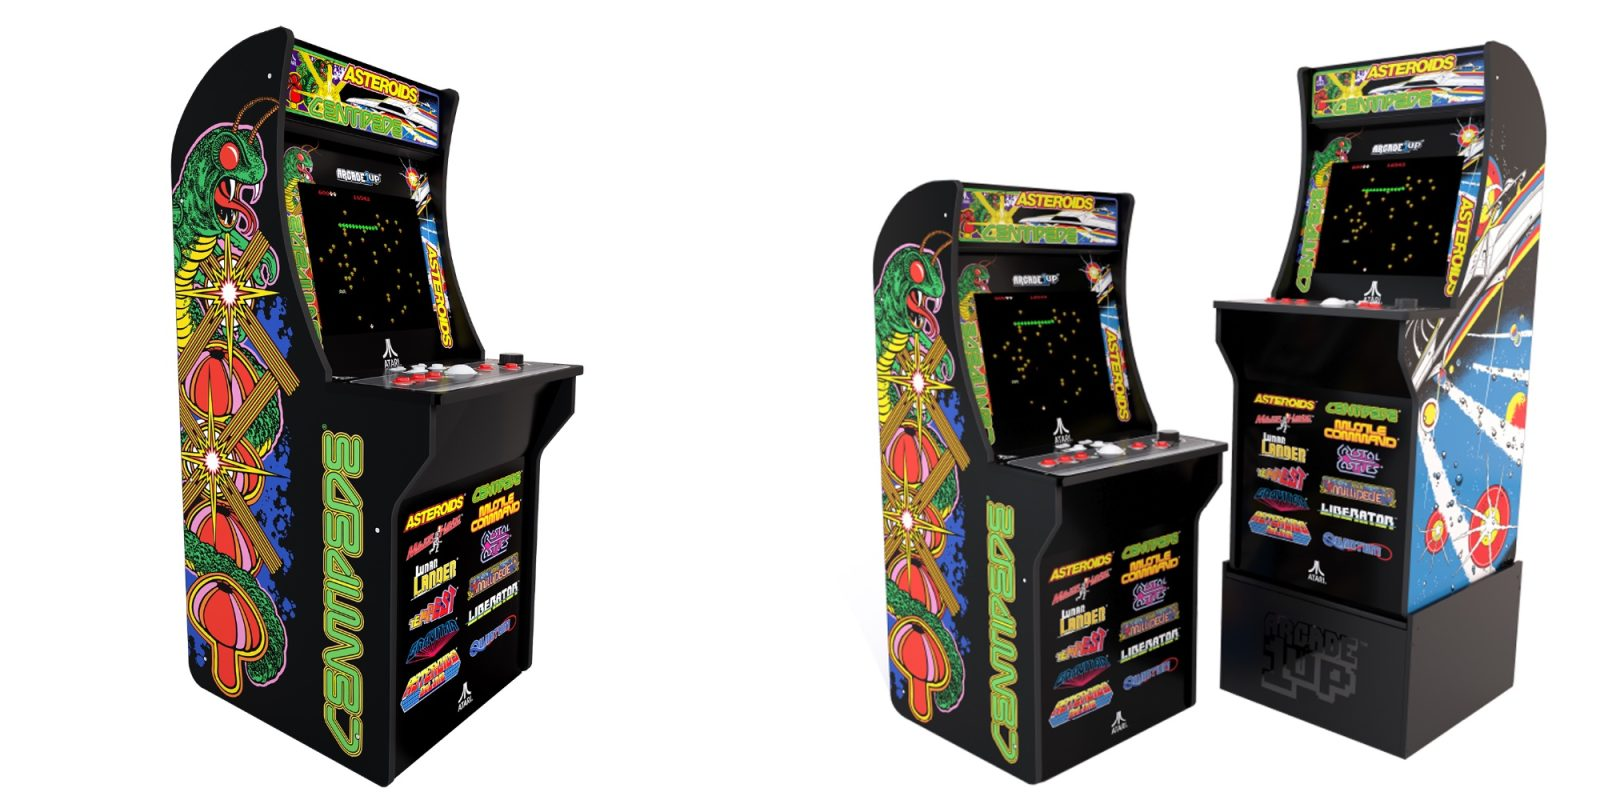 Add 12 retro titles to your game room with 25% off Arcade1Up's